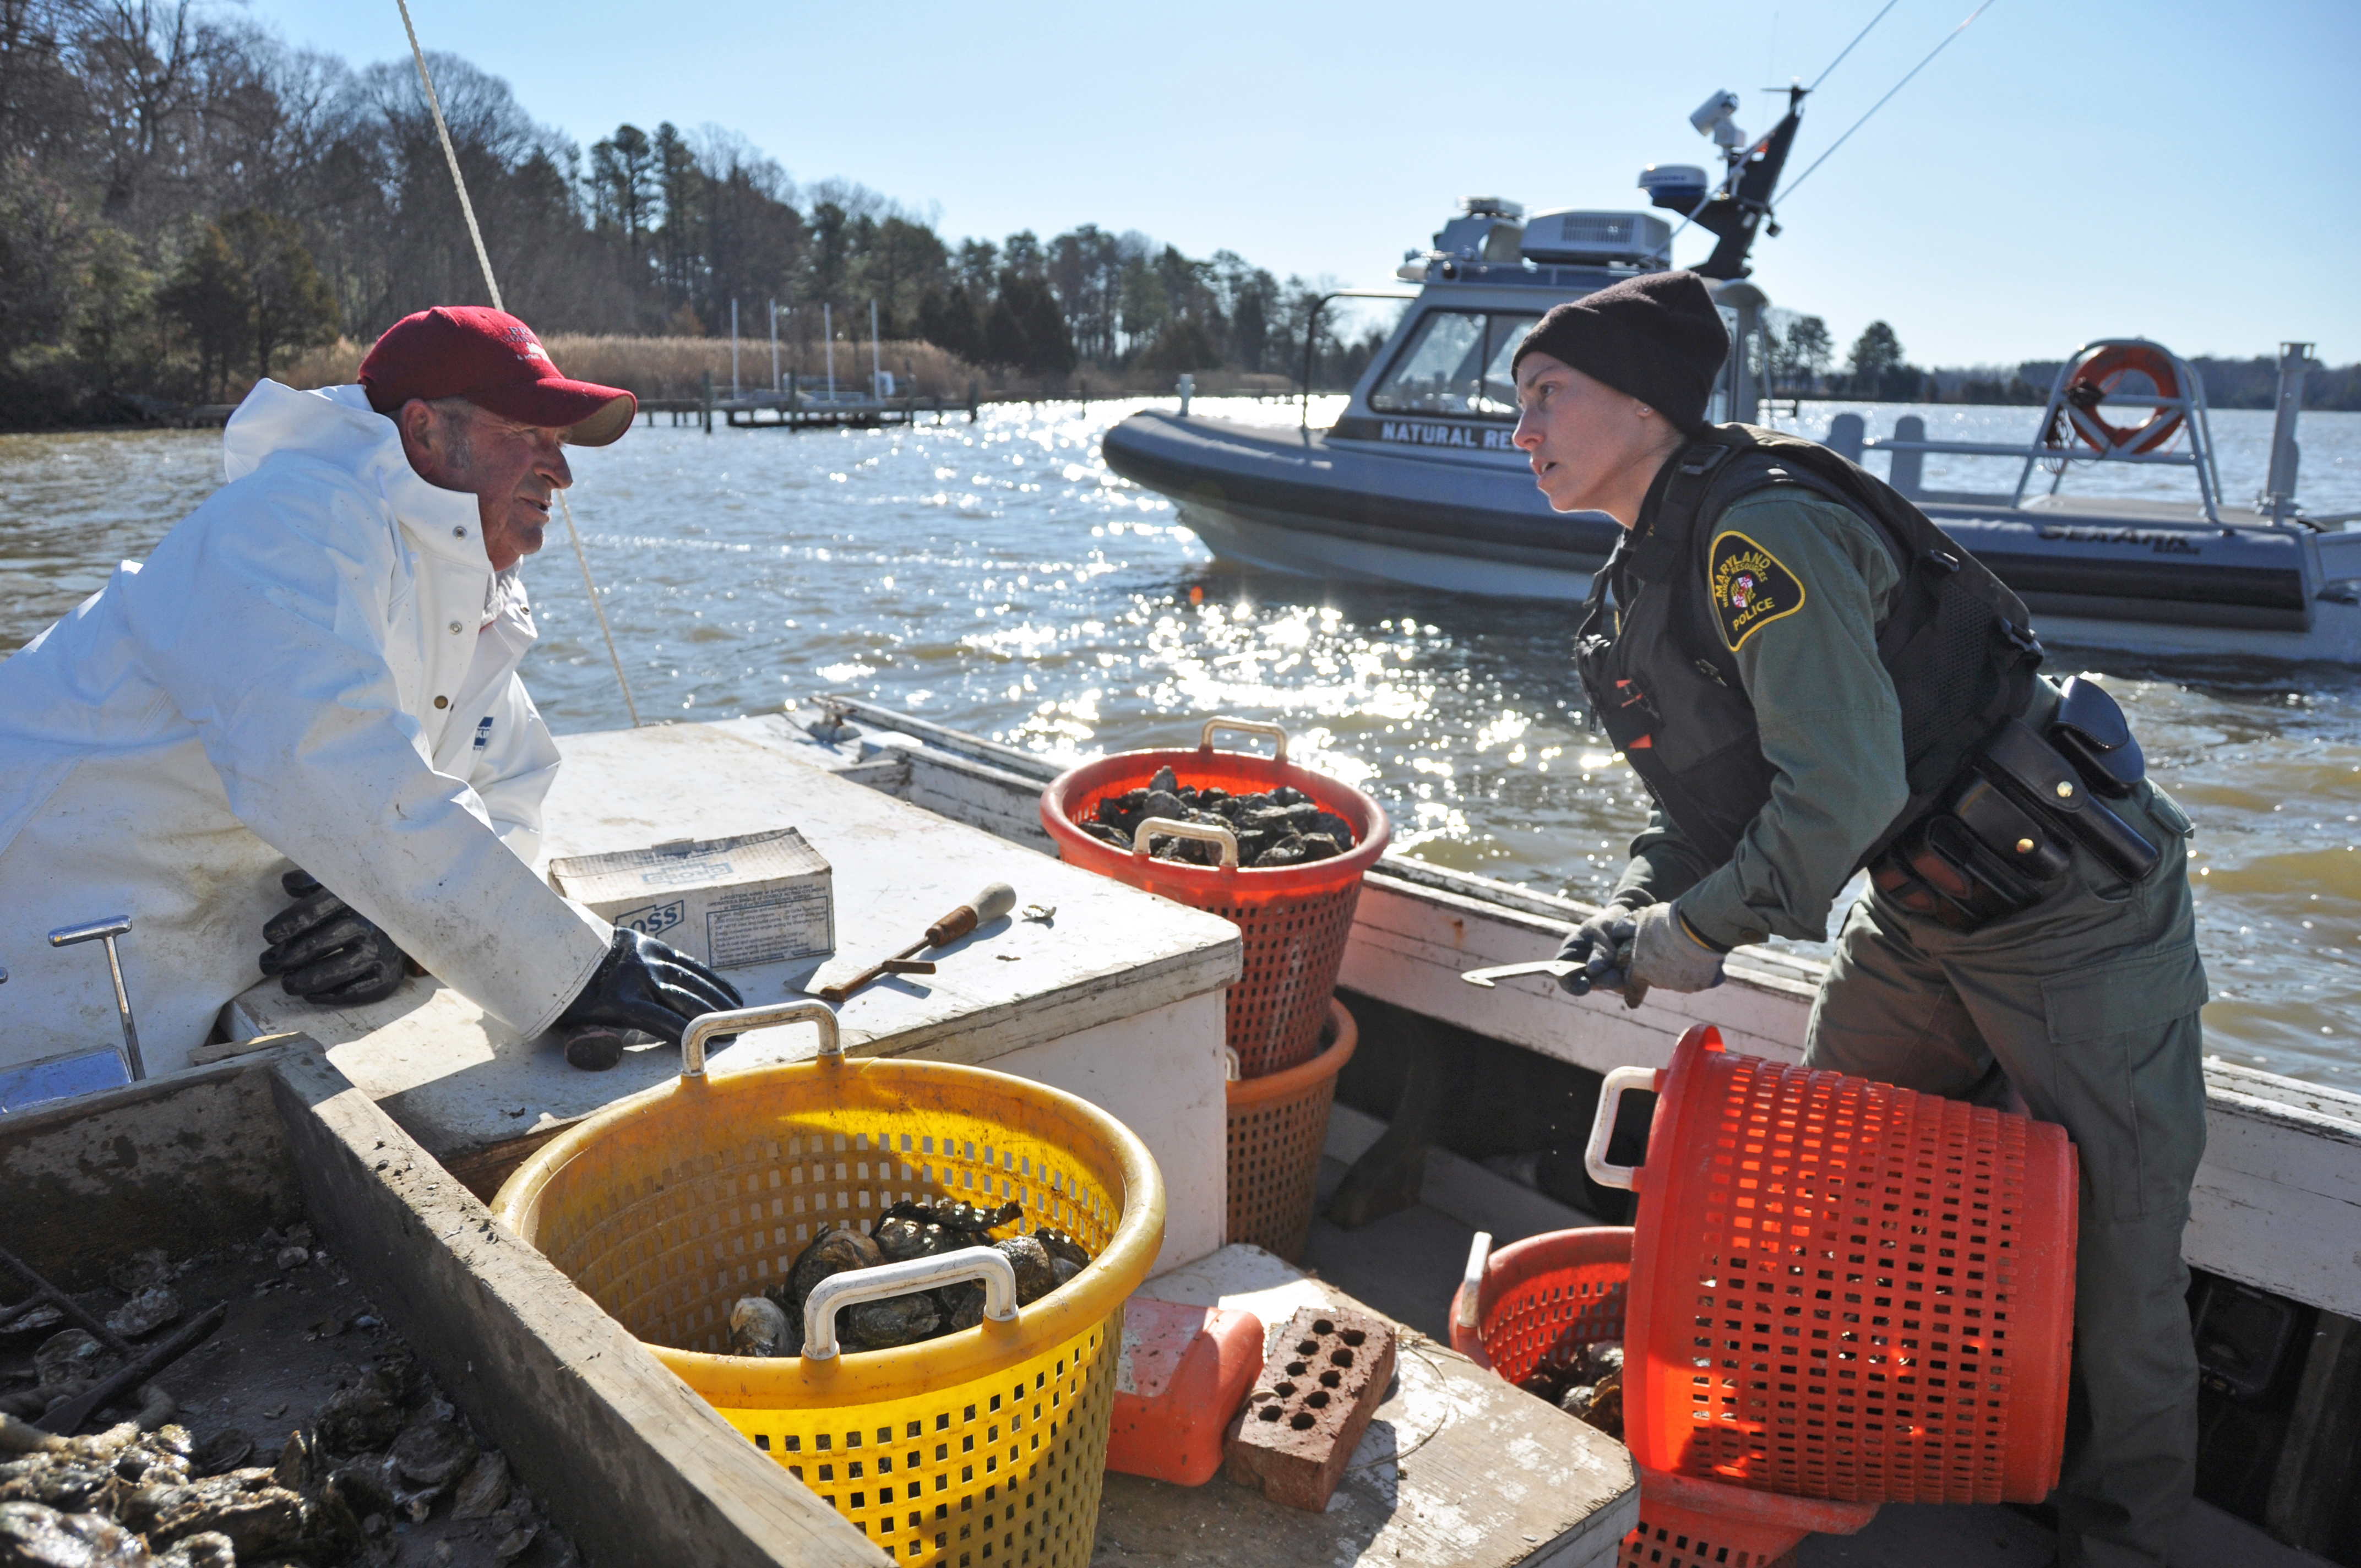 Maryland Natural Resources Police officer and a Chesapeake Bay waterman, photo by multimedia journalist and environment reporter Pamela Wood.